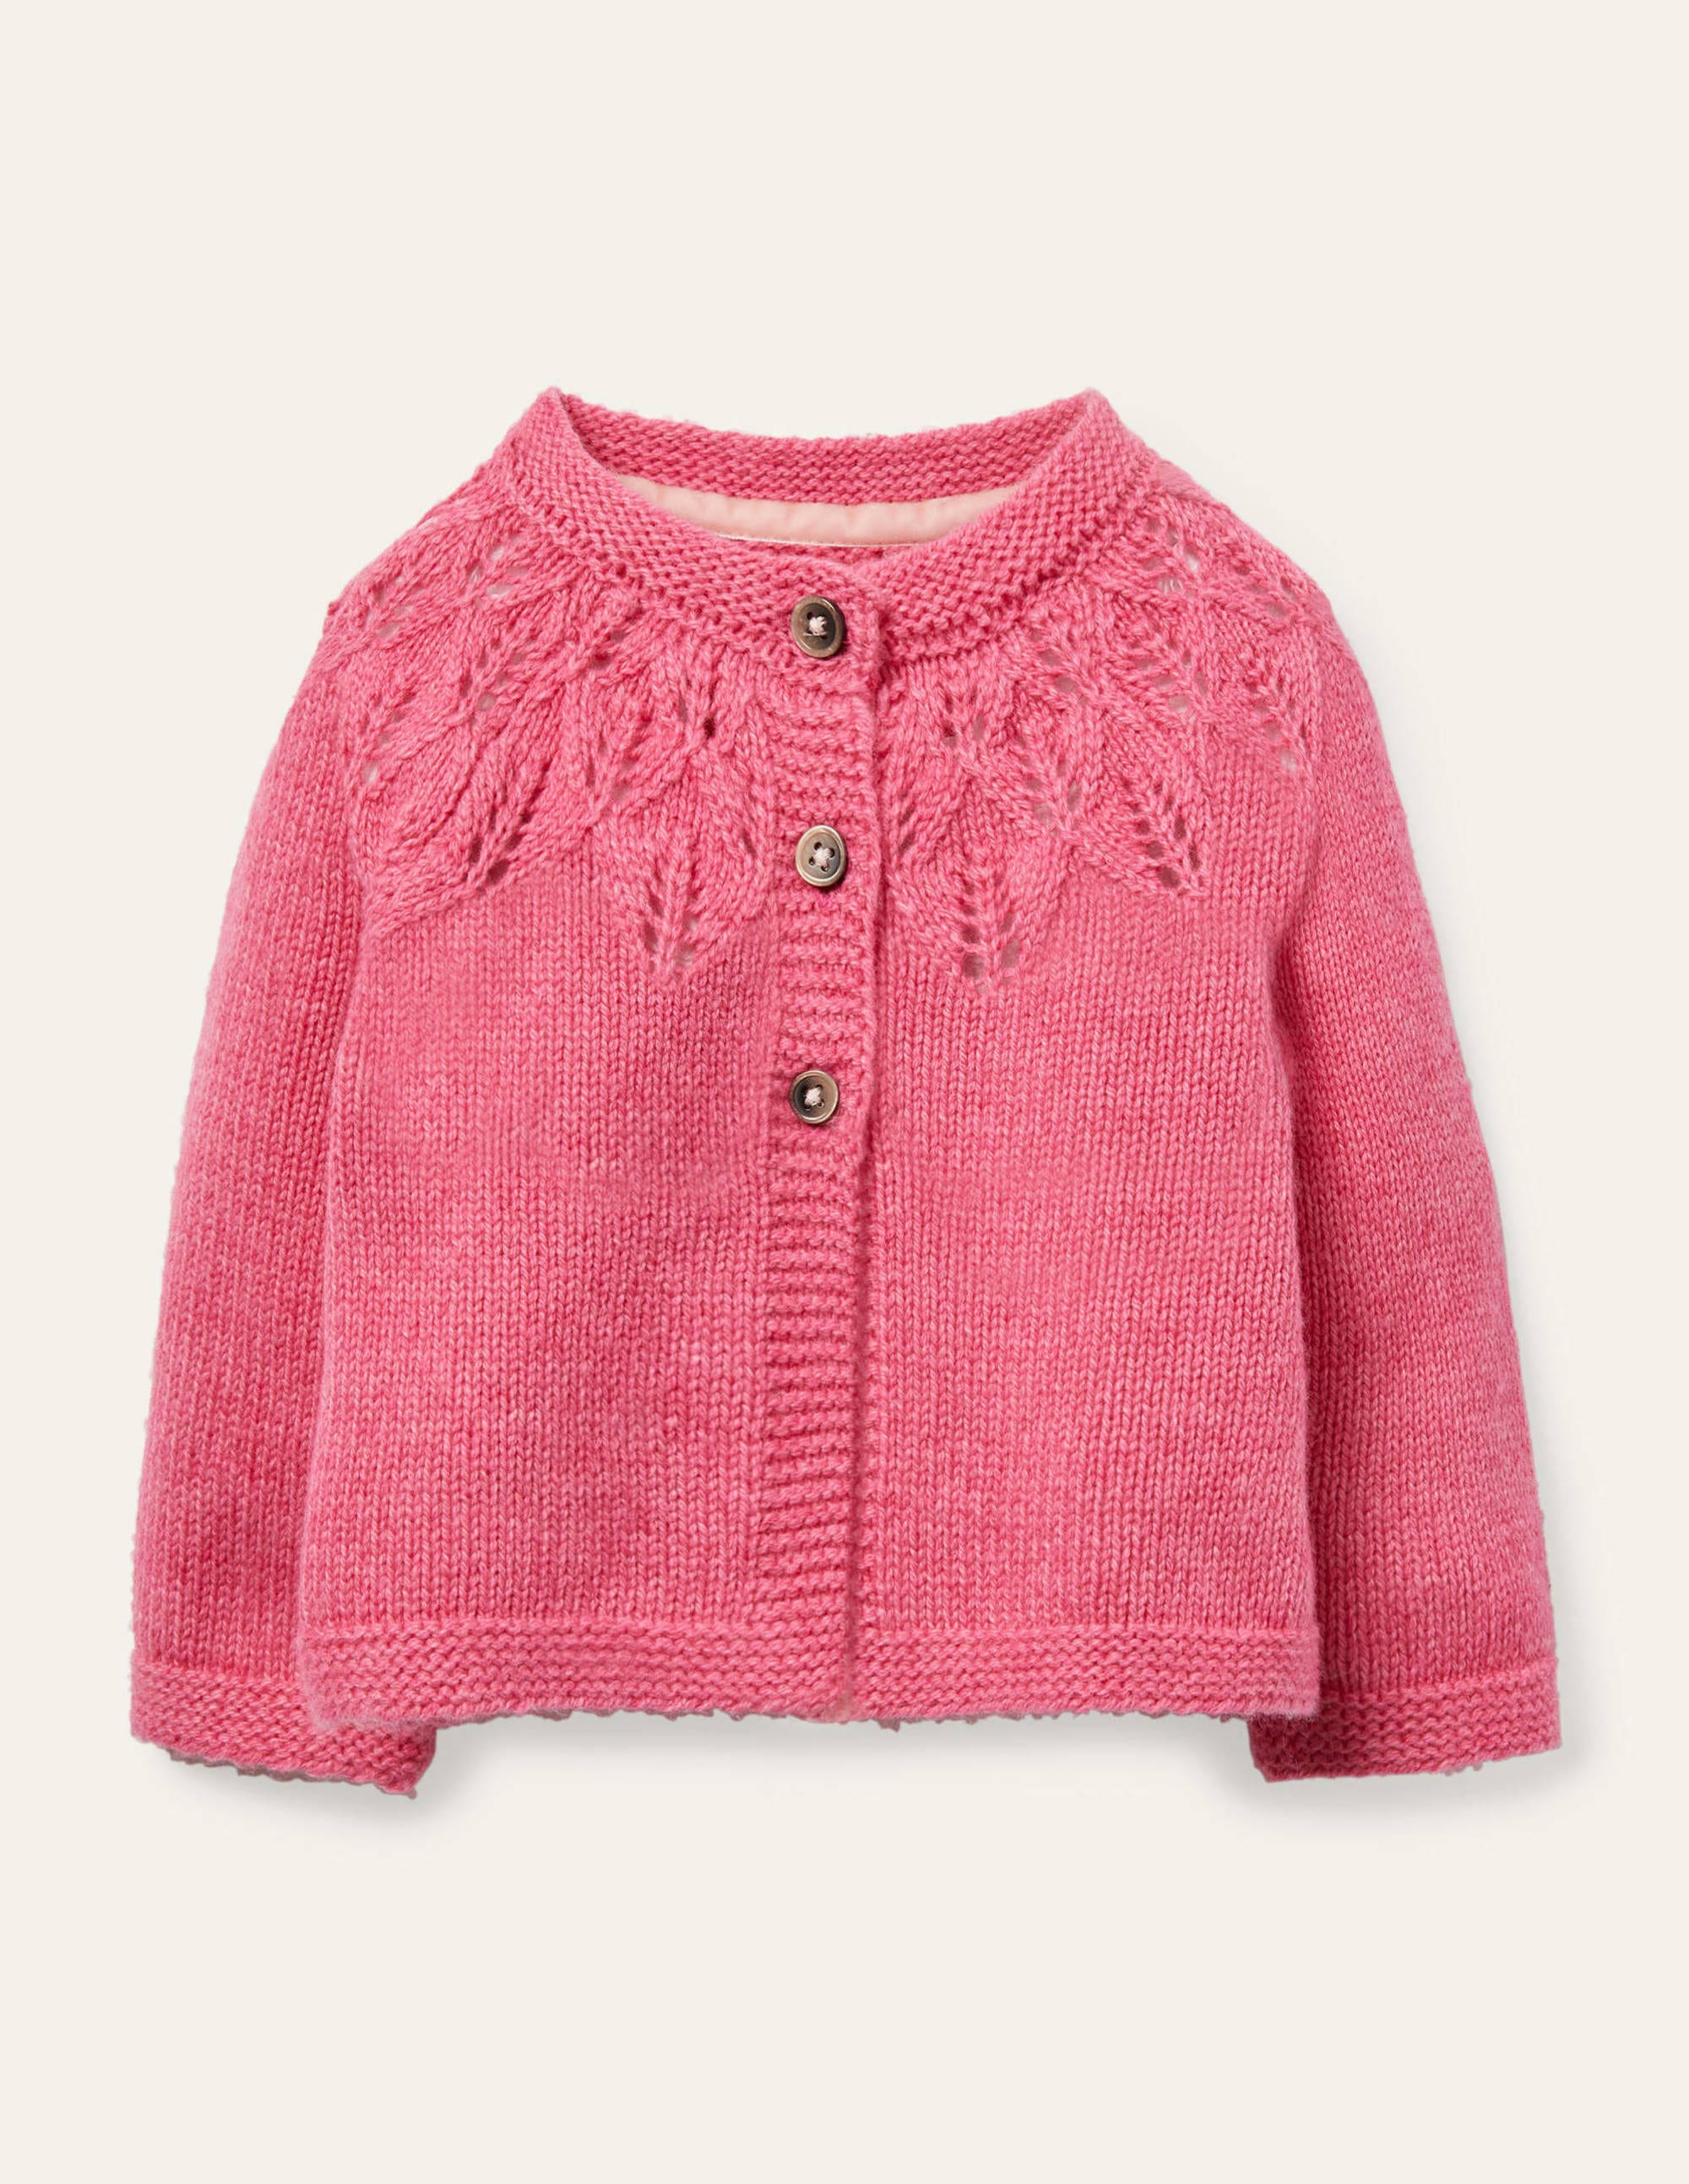 Boden Everyday Textured Cardigan - Cosmos Pink